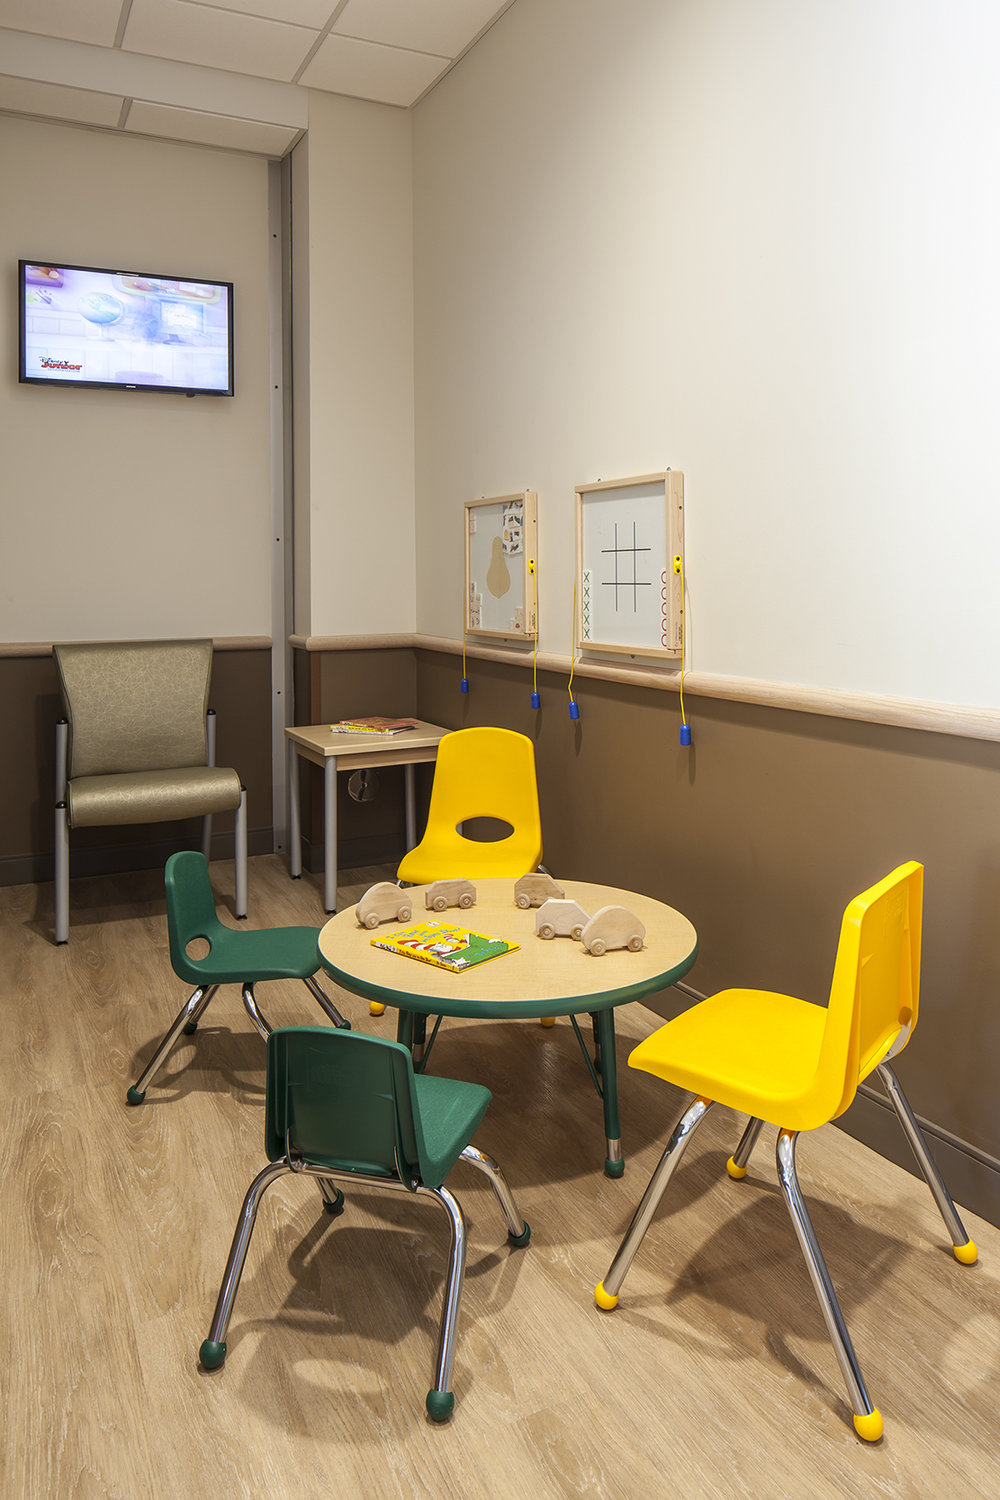 Children's corner in waiting room